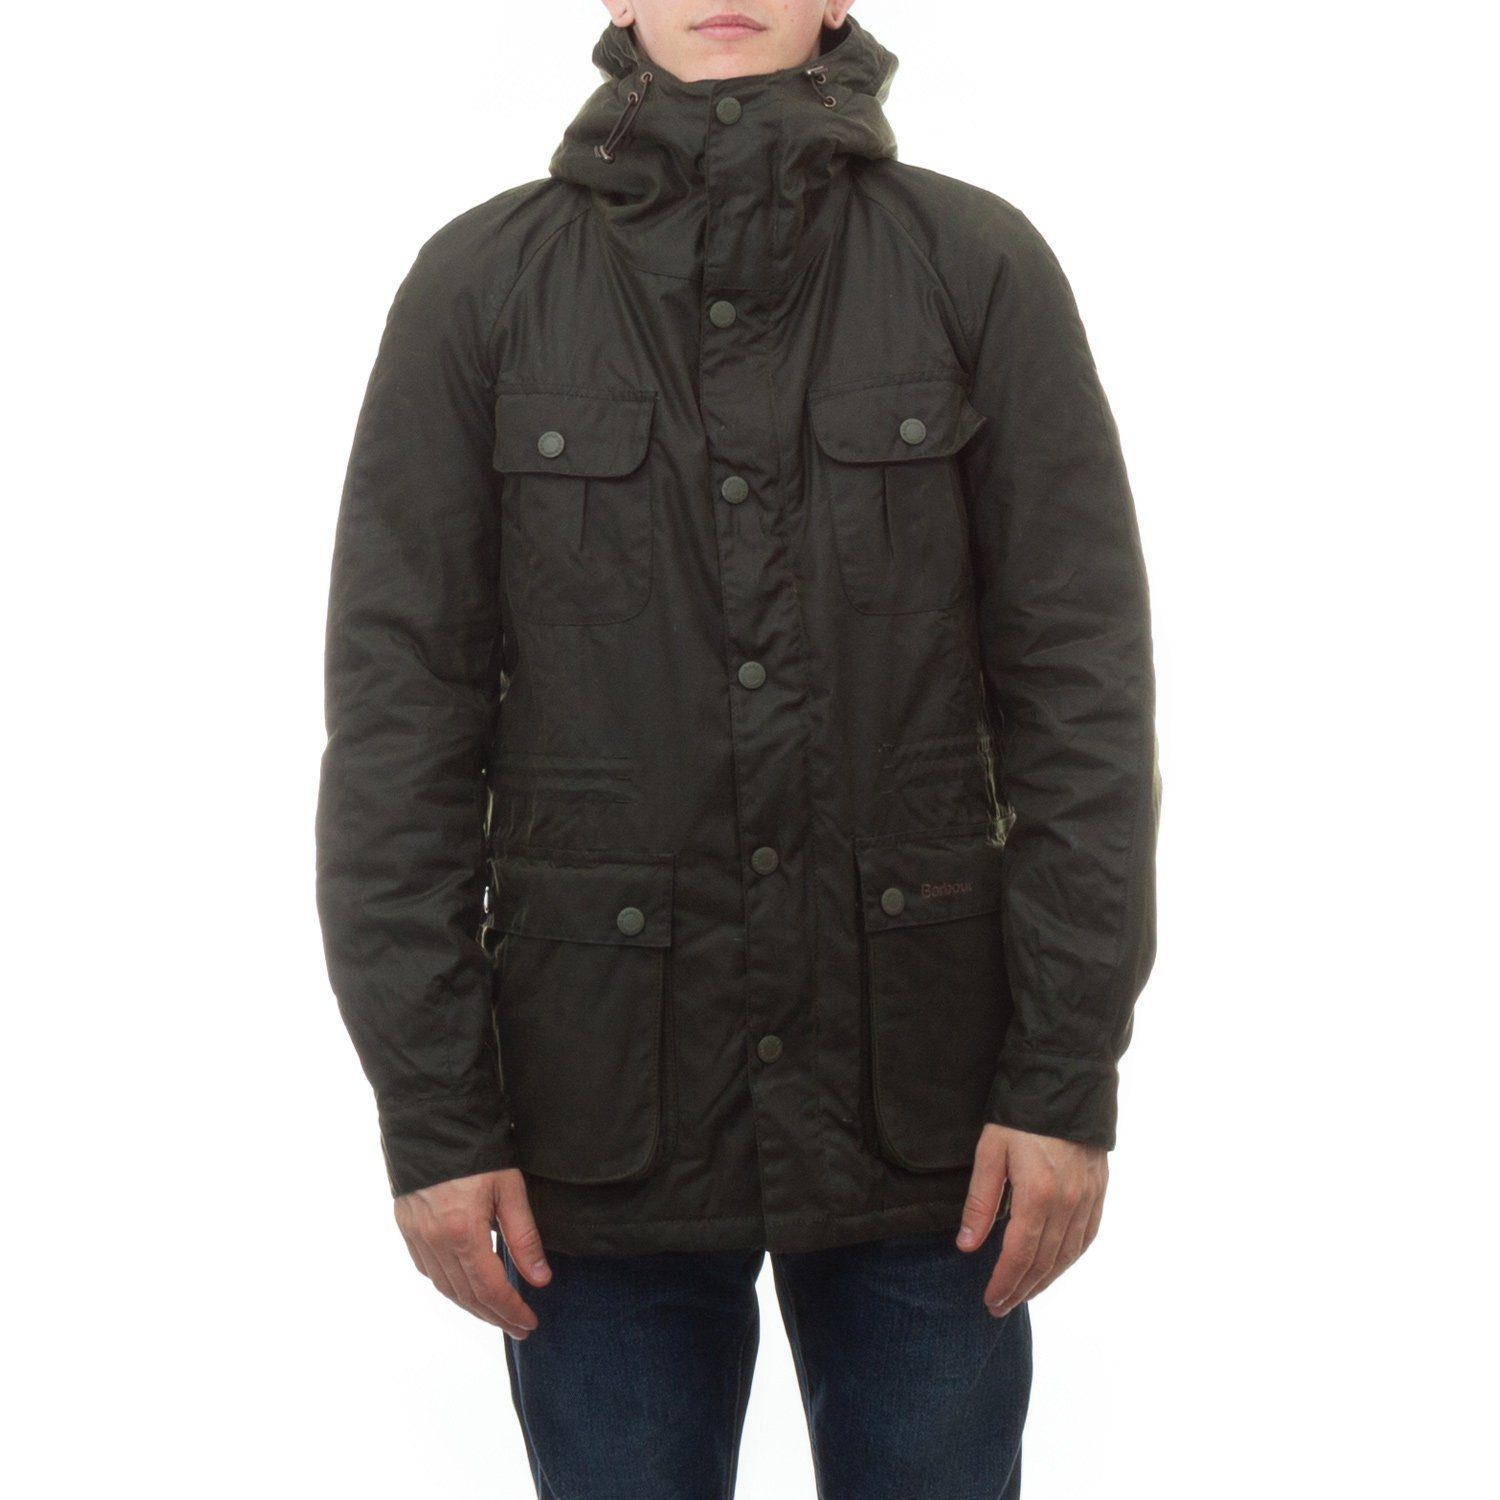 Barbour Brindle Wax Jacket in Green for Men - Lyst 408f717aad3b